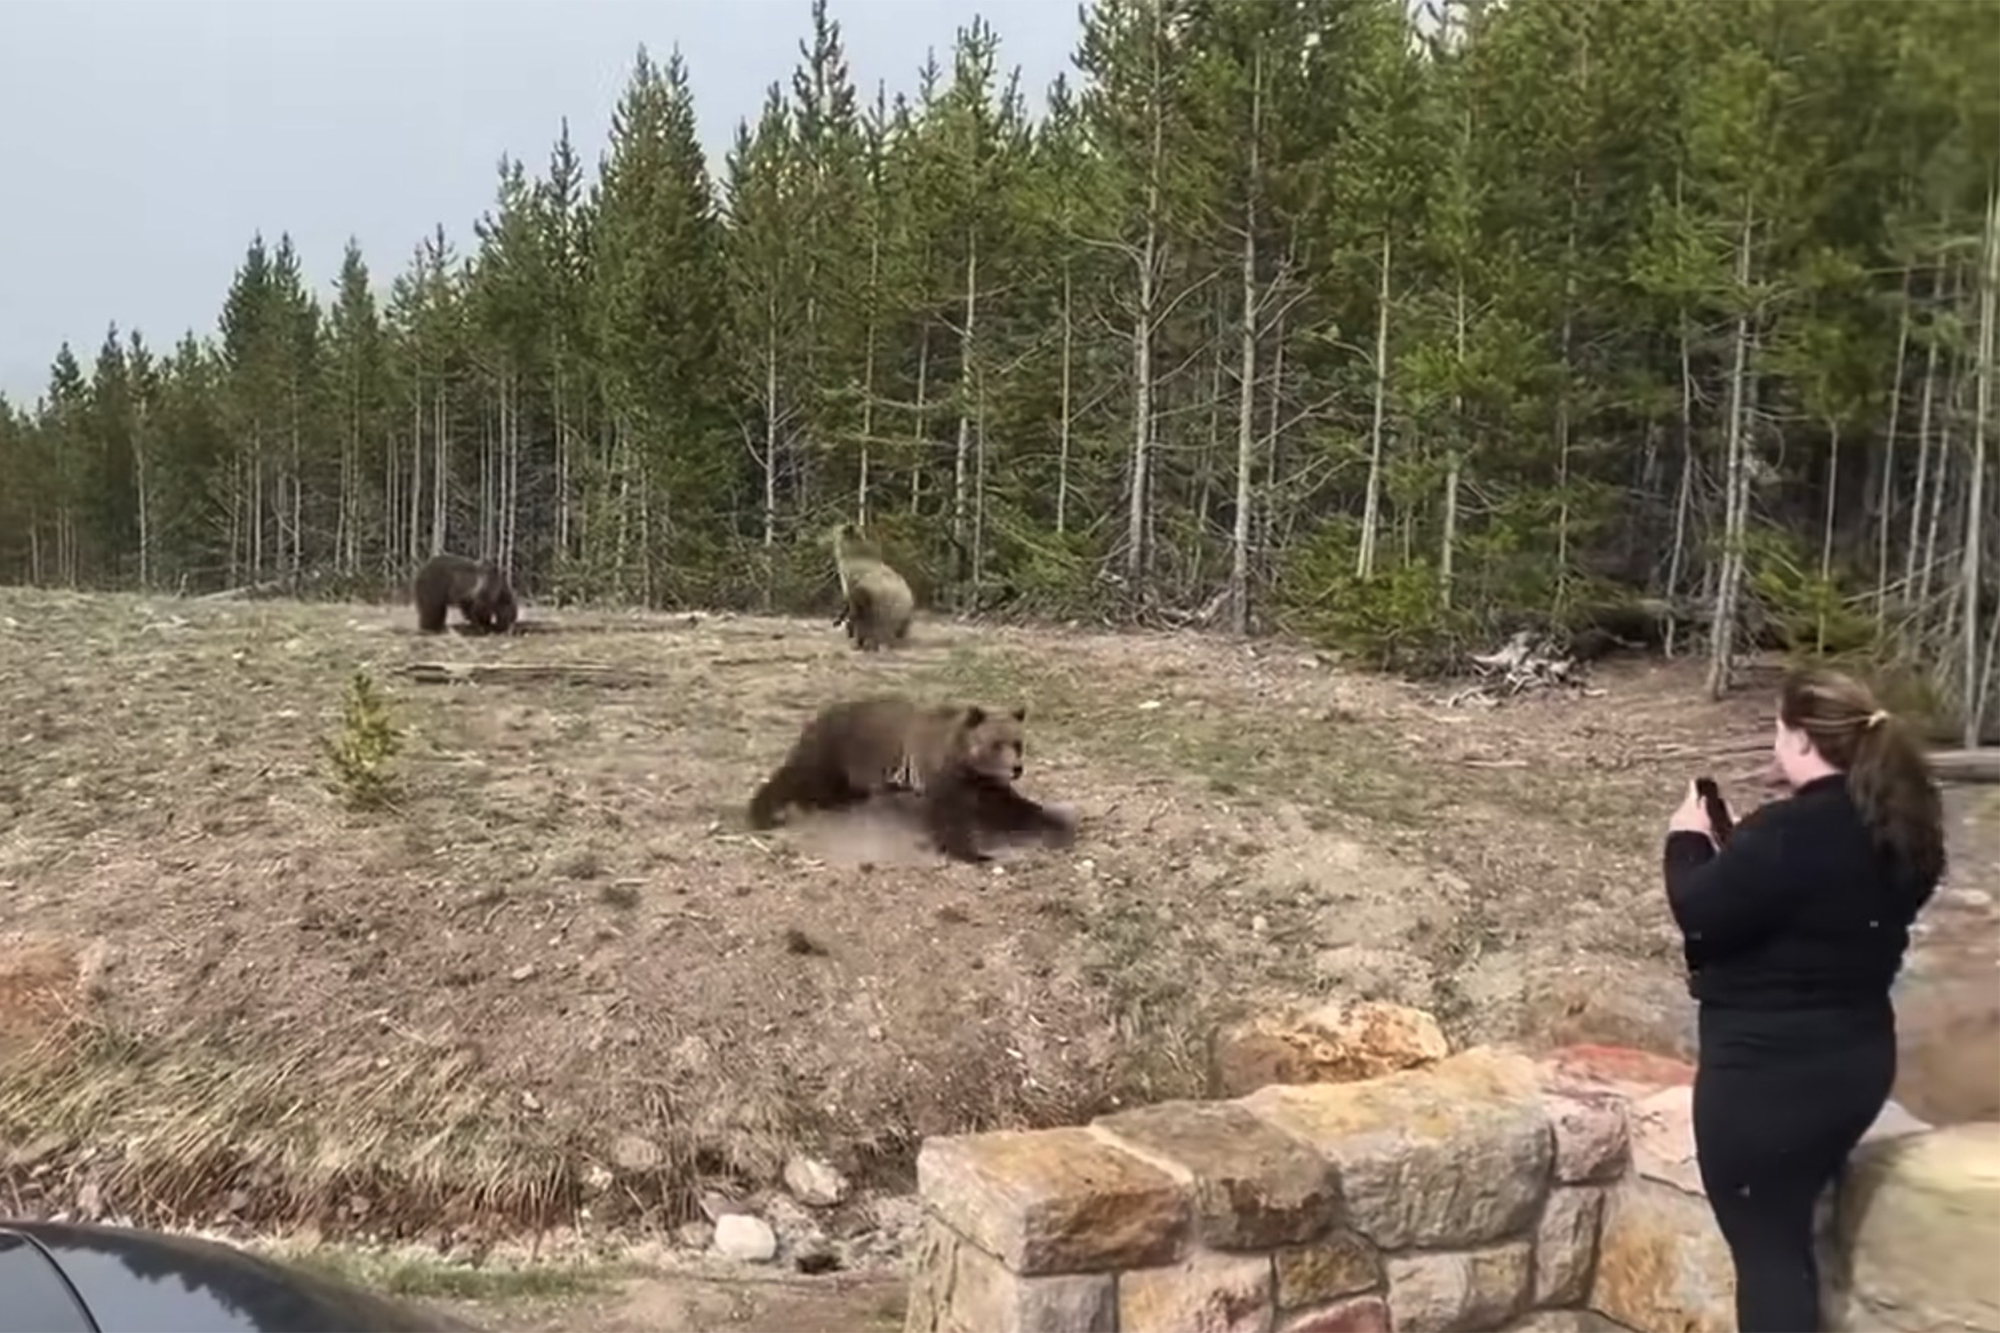 Picture taken of the lady while approaching the bear